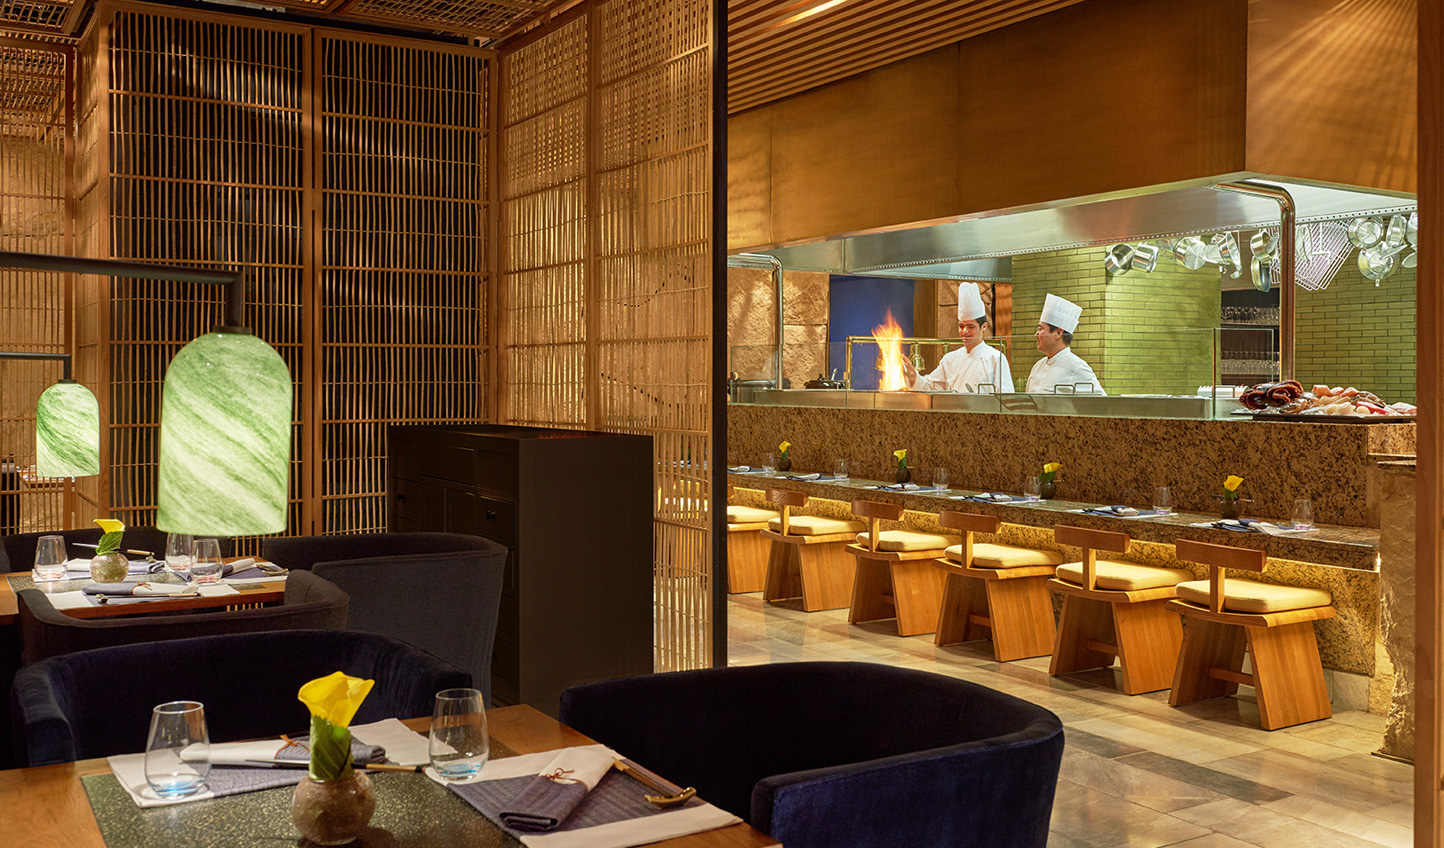 Watch the chefs in action over a meal at Tsuki